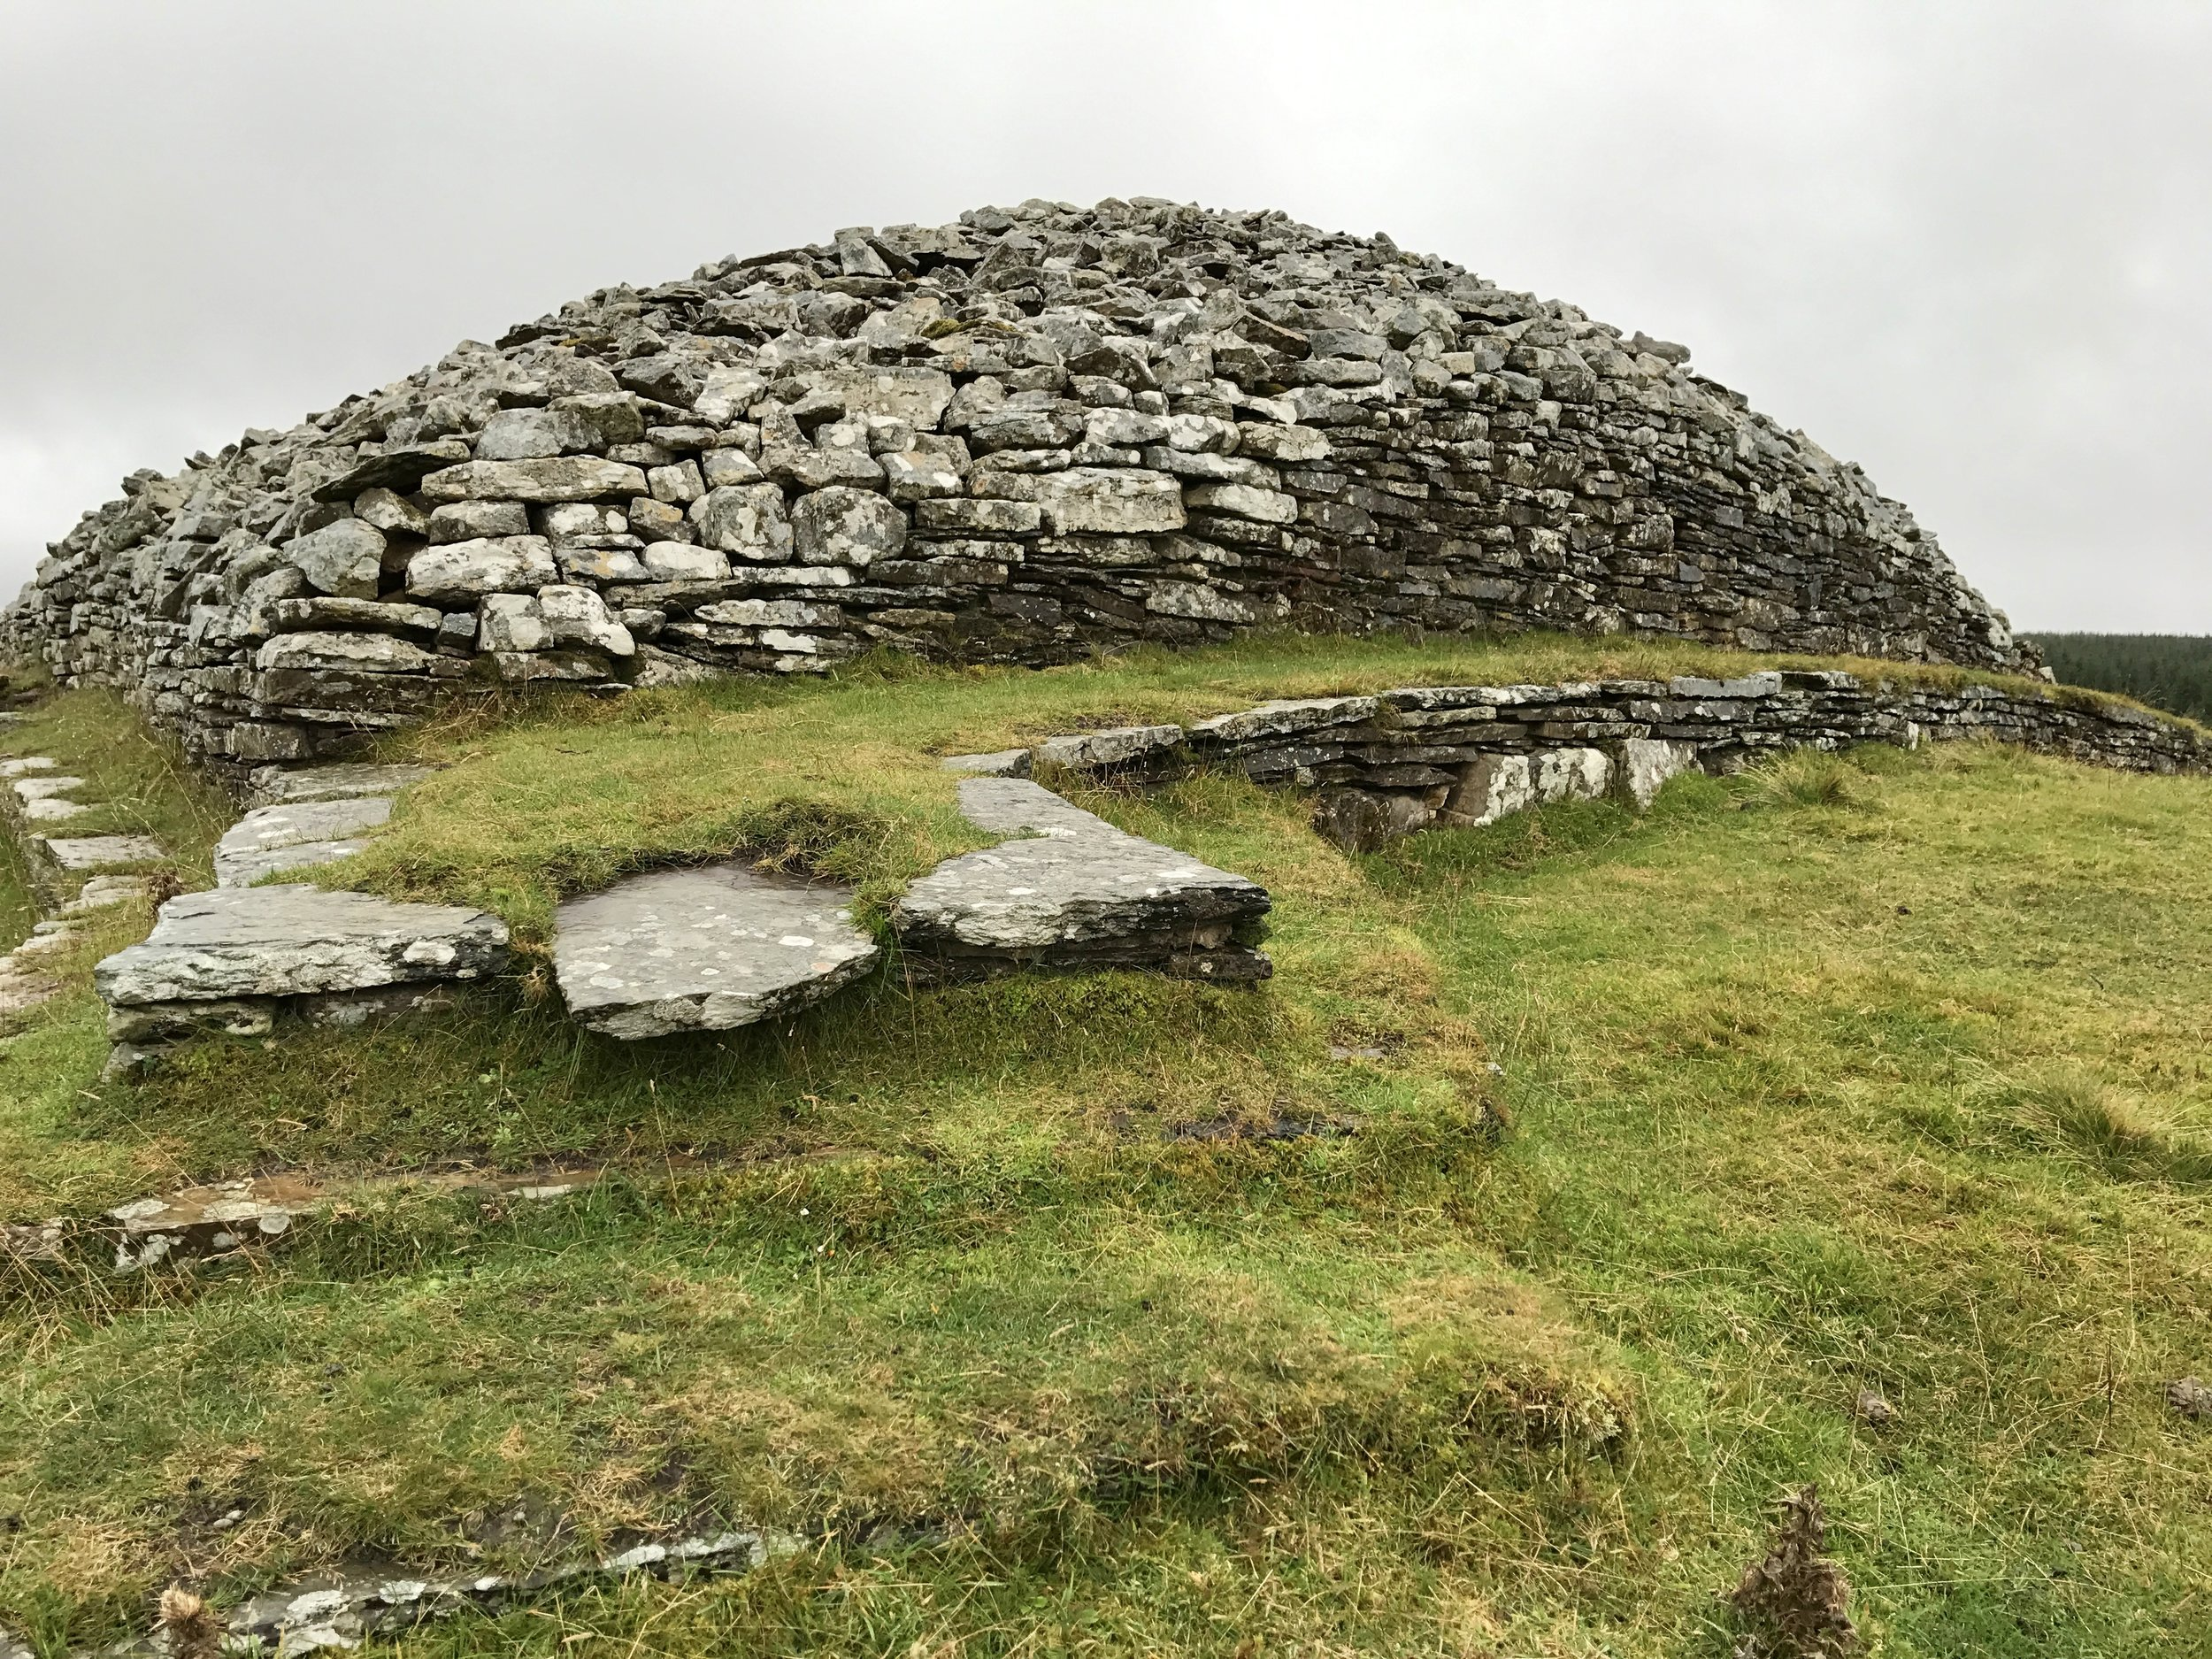 Outside a Neolithic cairn. In particular, the Grey Cairns of Camster outside of Wick.